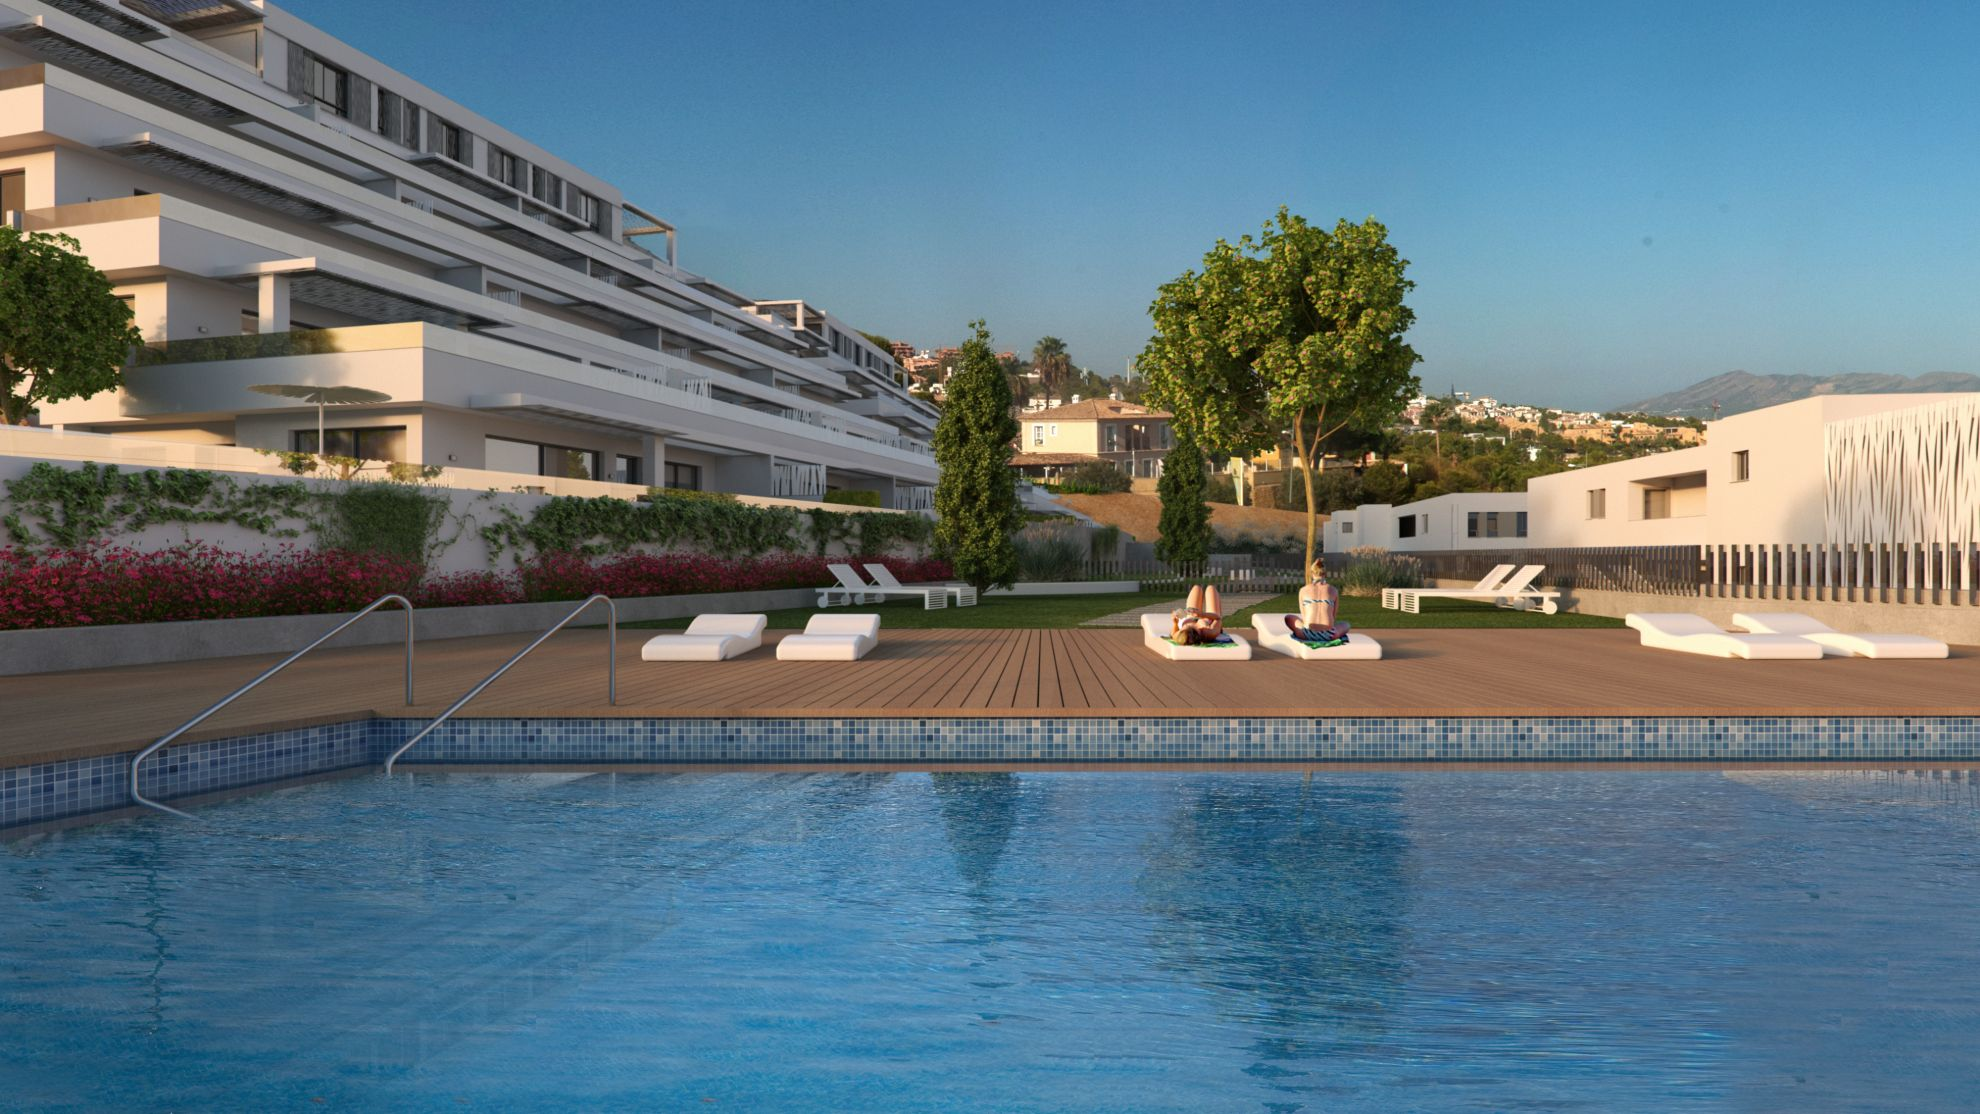 2 and 3 bedroom apartment in a fully equipped complex overlooking the sea in Finestrat 18